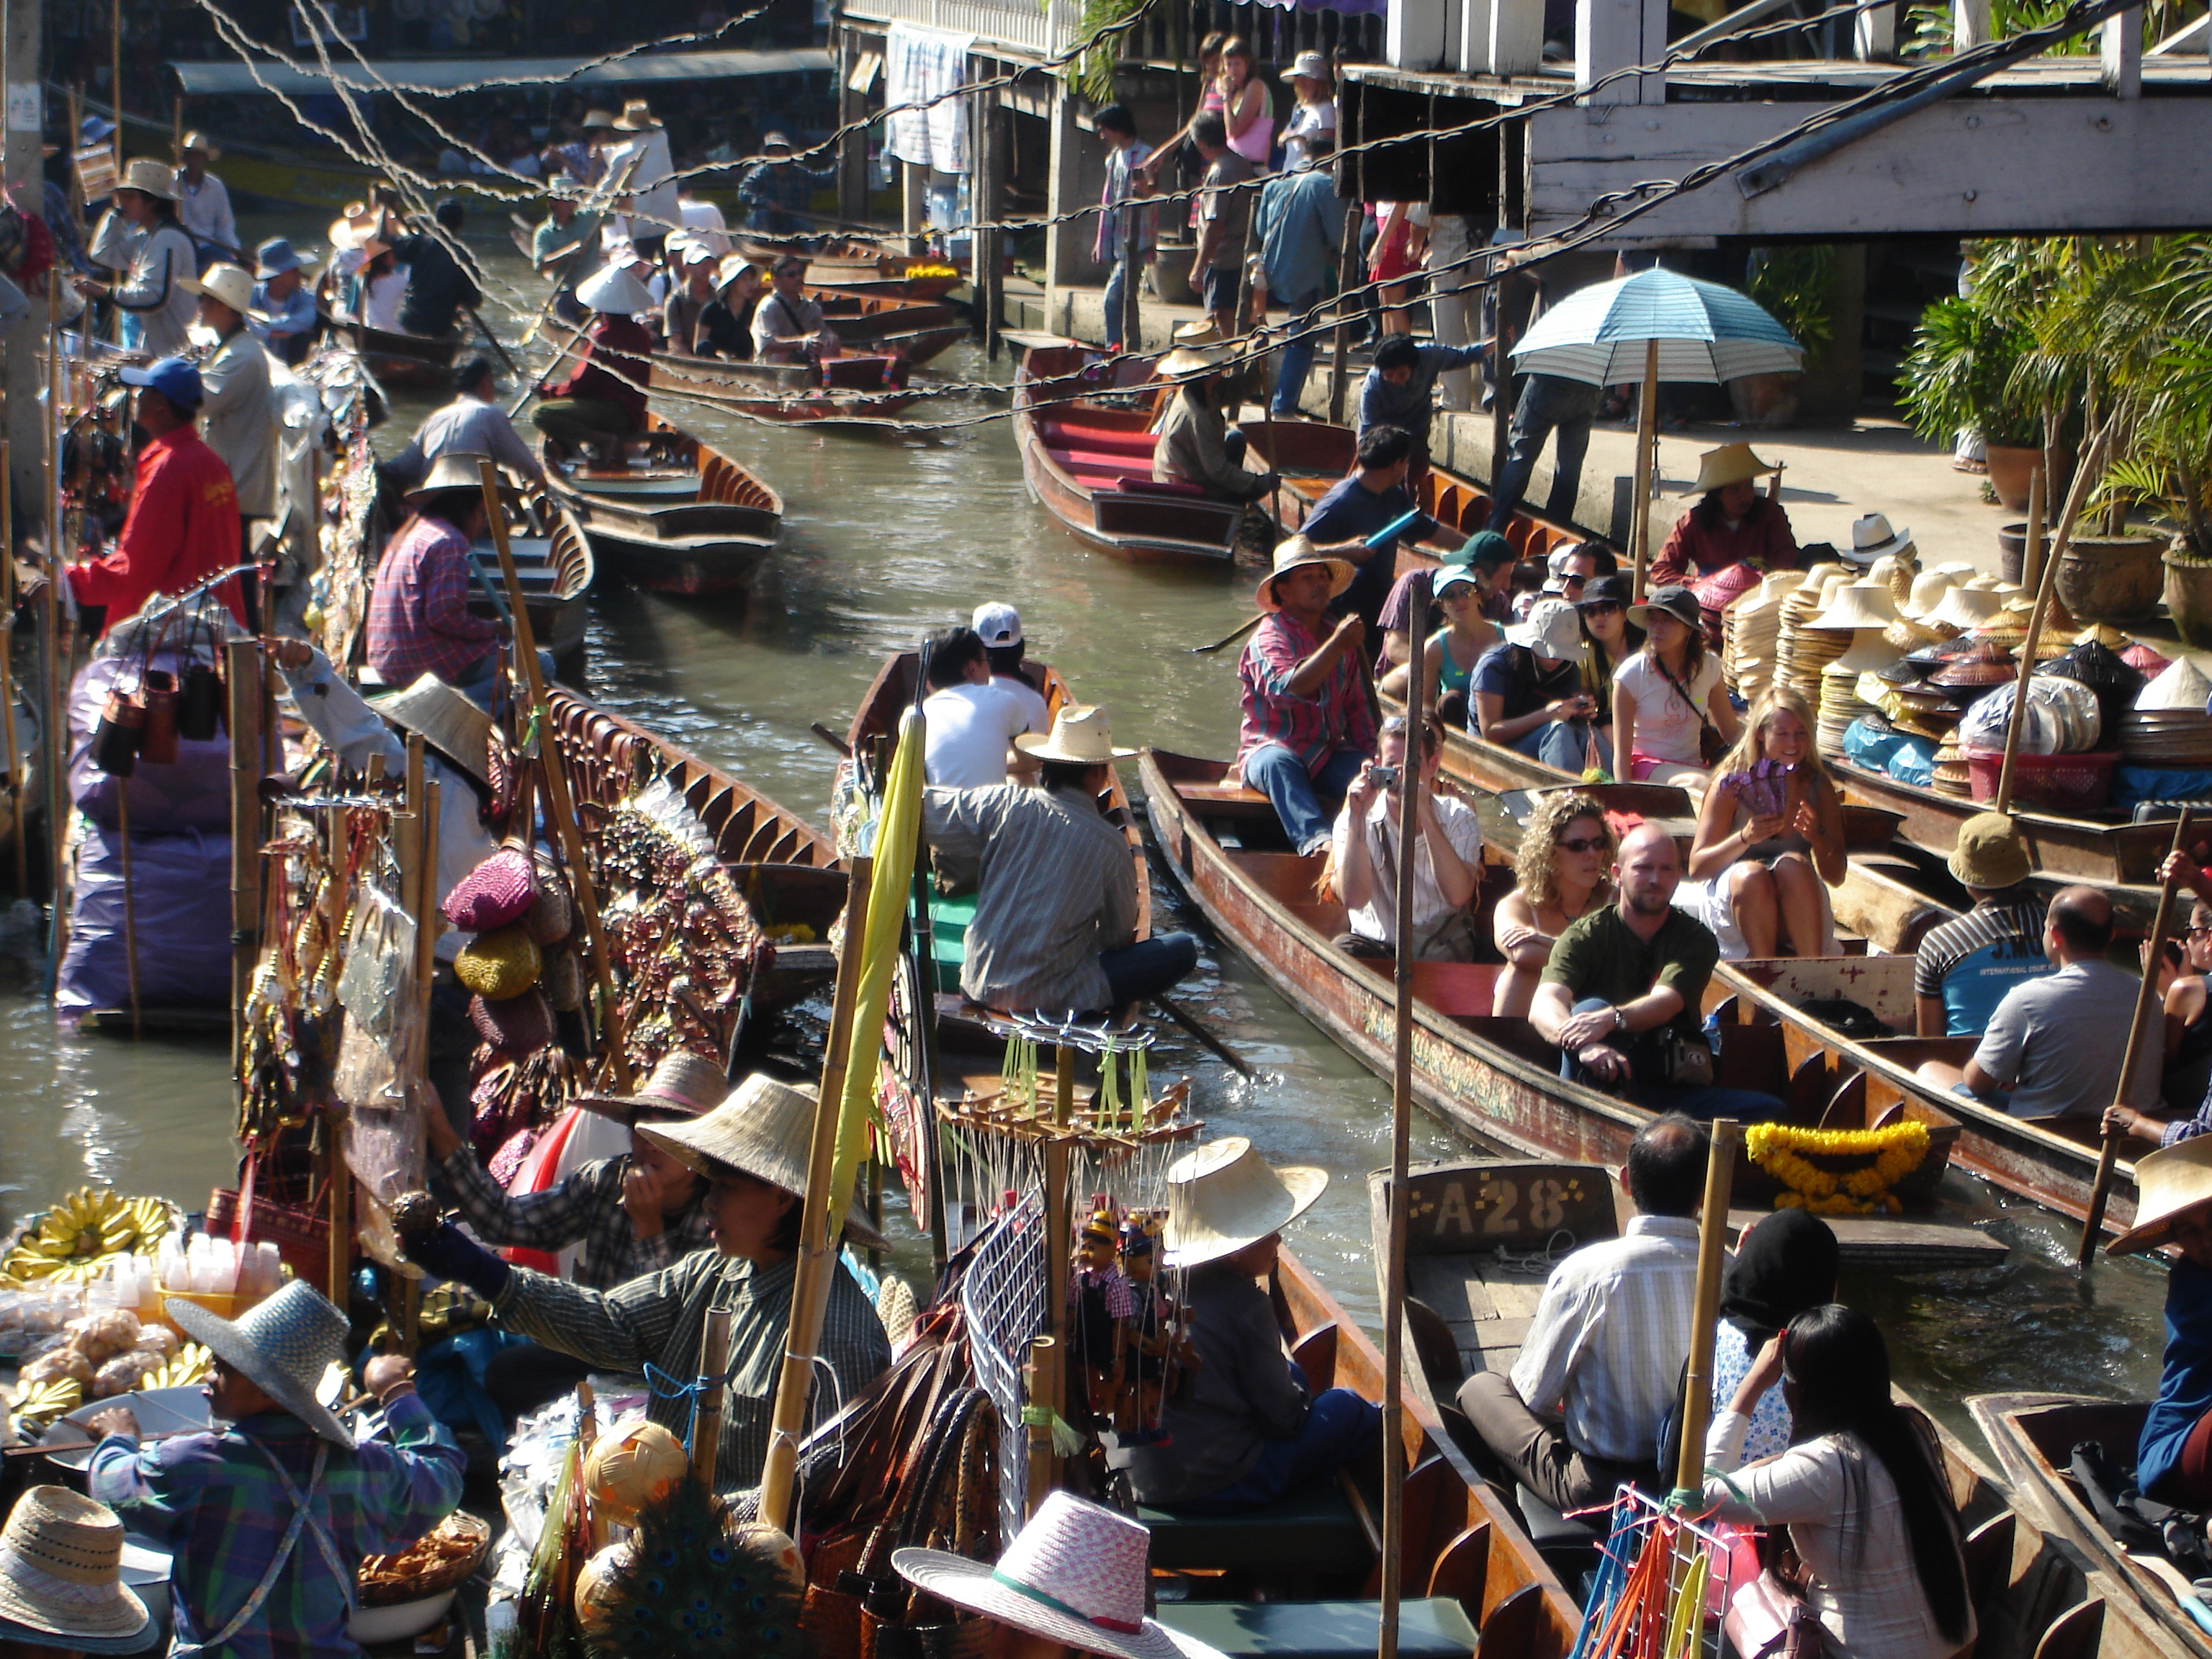 Crowded klong in the main portion of the Damnoen Saduak Floating Market in Thailand. Photo taken by Mark Joseph Jochim on January 10, 2006.